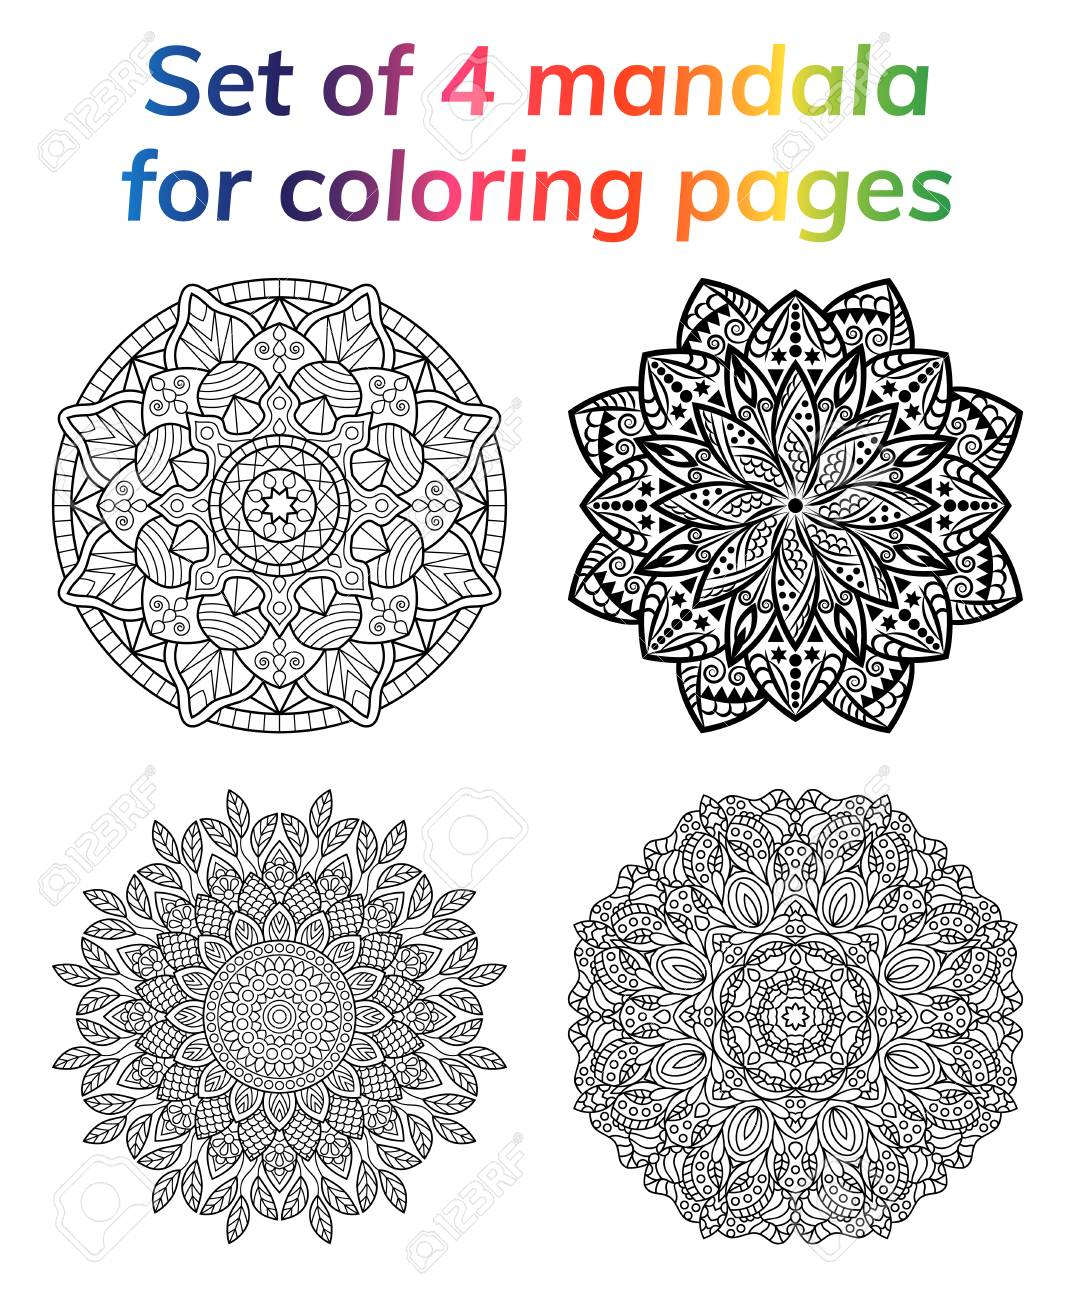 White Background Black Outline Vector Illustration Coloring Book Pages Set Collection Mandala Indian Antistress Medallion Abstract Islamic Flower